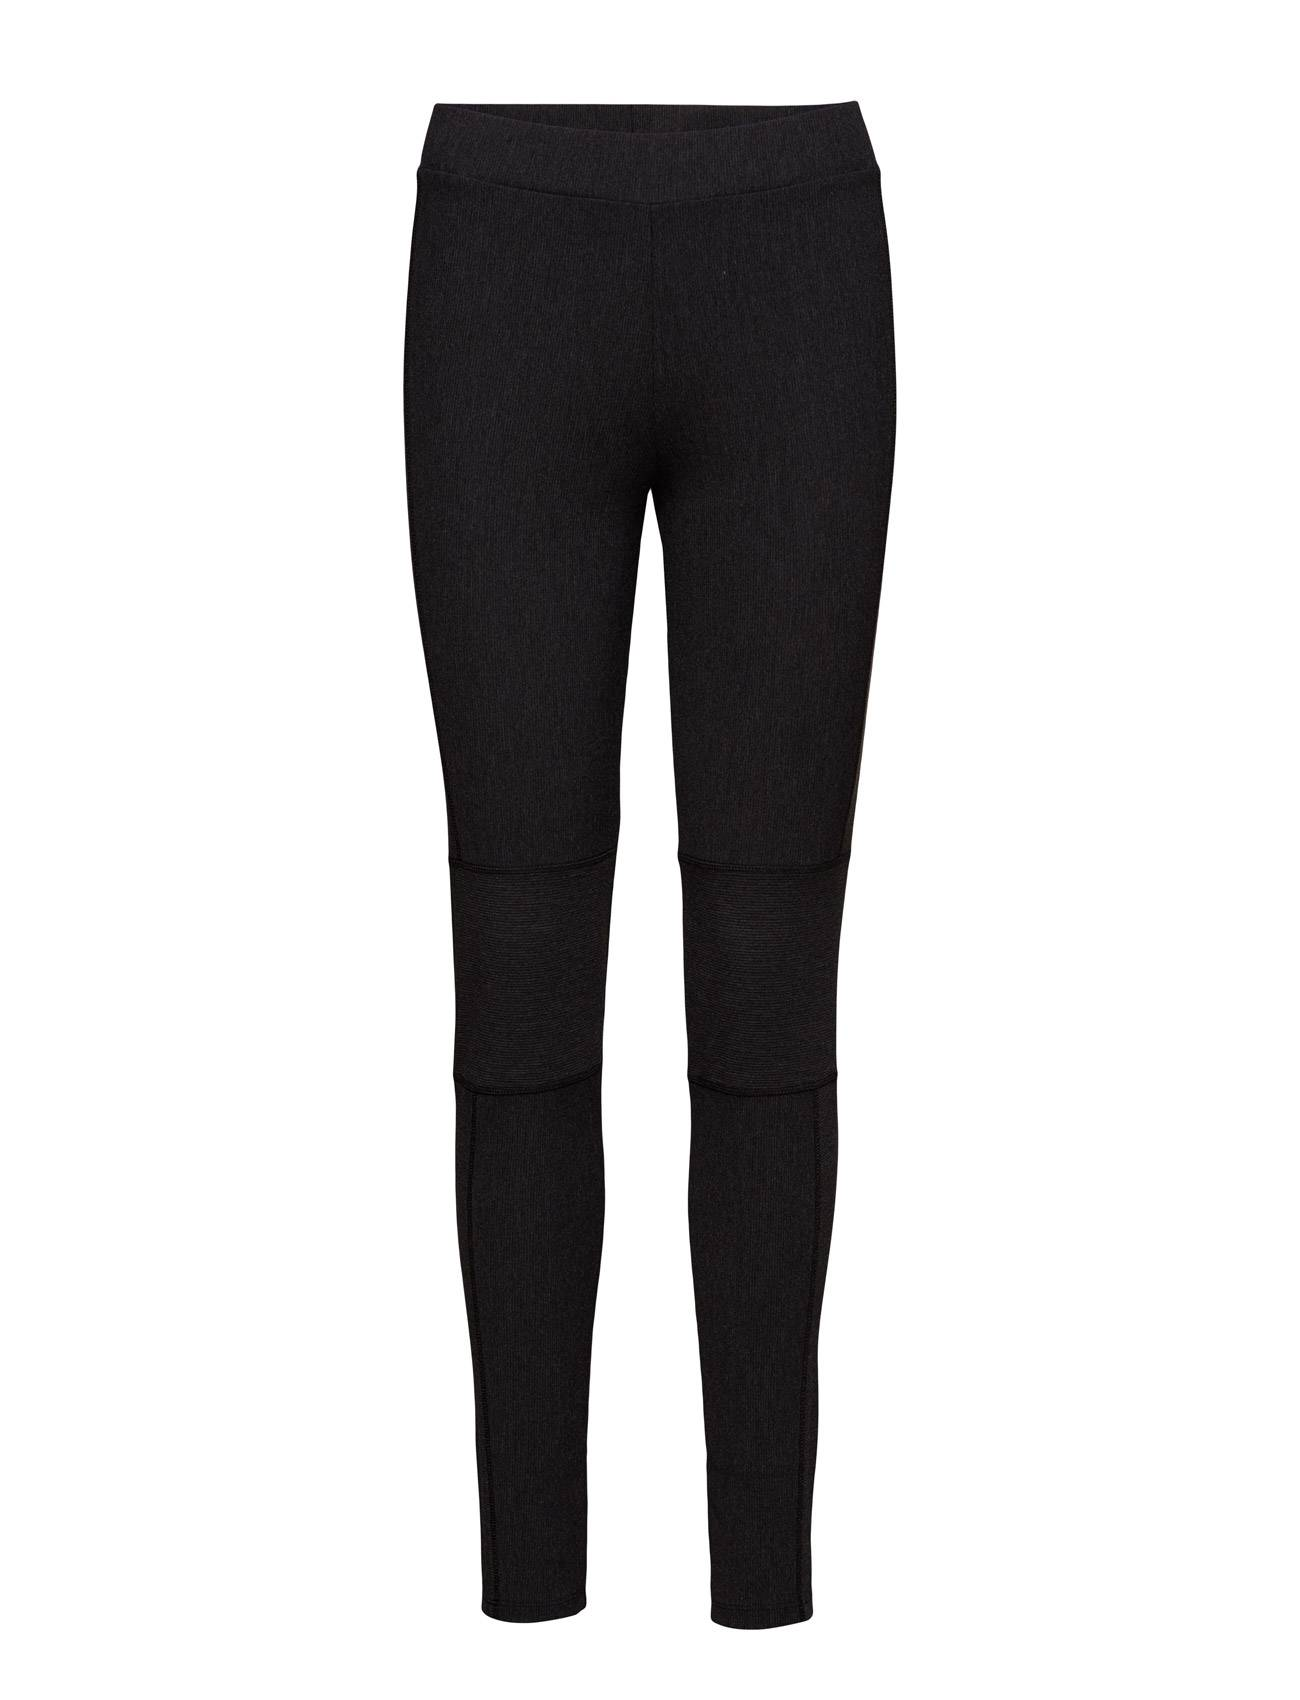 Ilse Jacobsen Womens Leggins